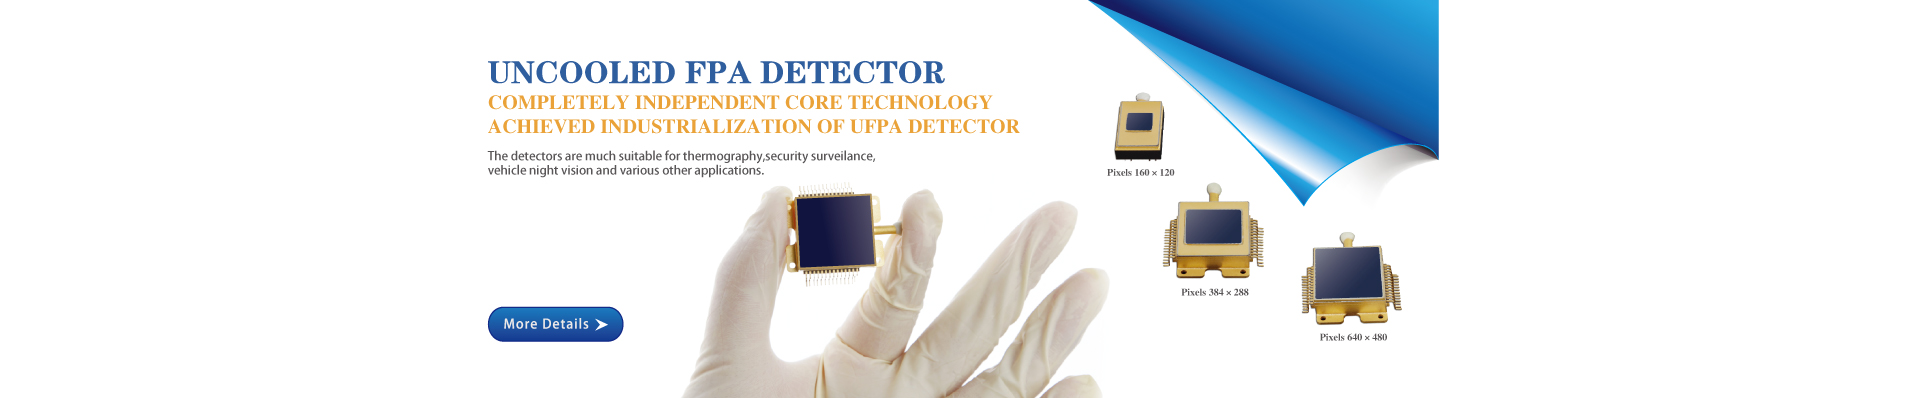 Uncooled FPA detector